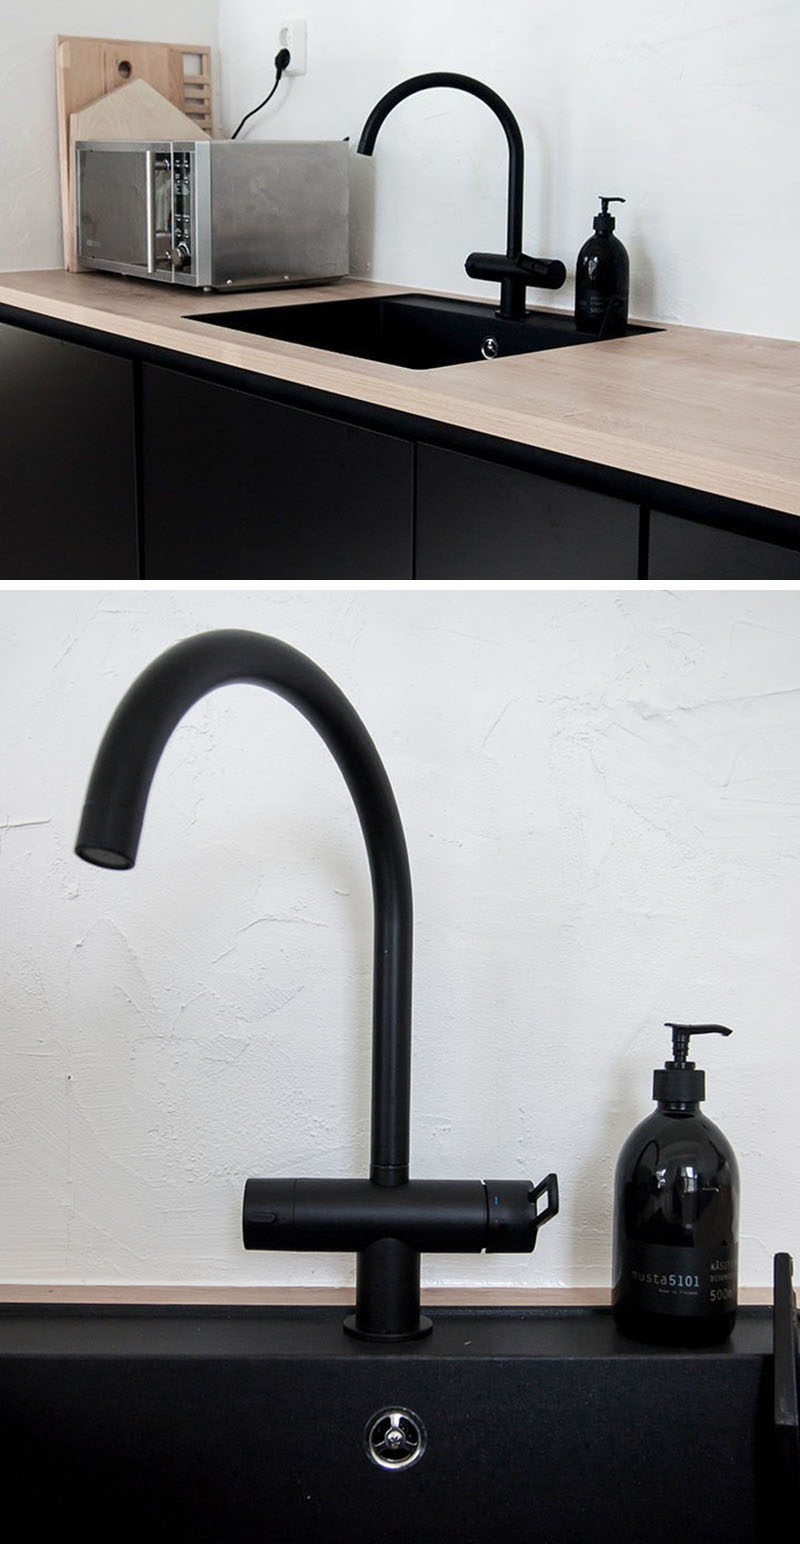 A black sink and matching faucet can tie together all the other elements of black and make for a cohesive, edgy look. #BlackKitchen #BlackSink #BlackFaucet